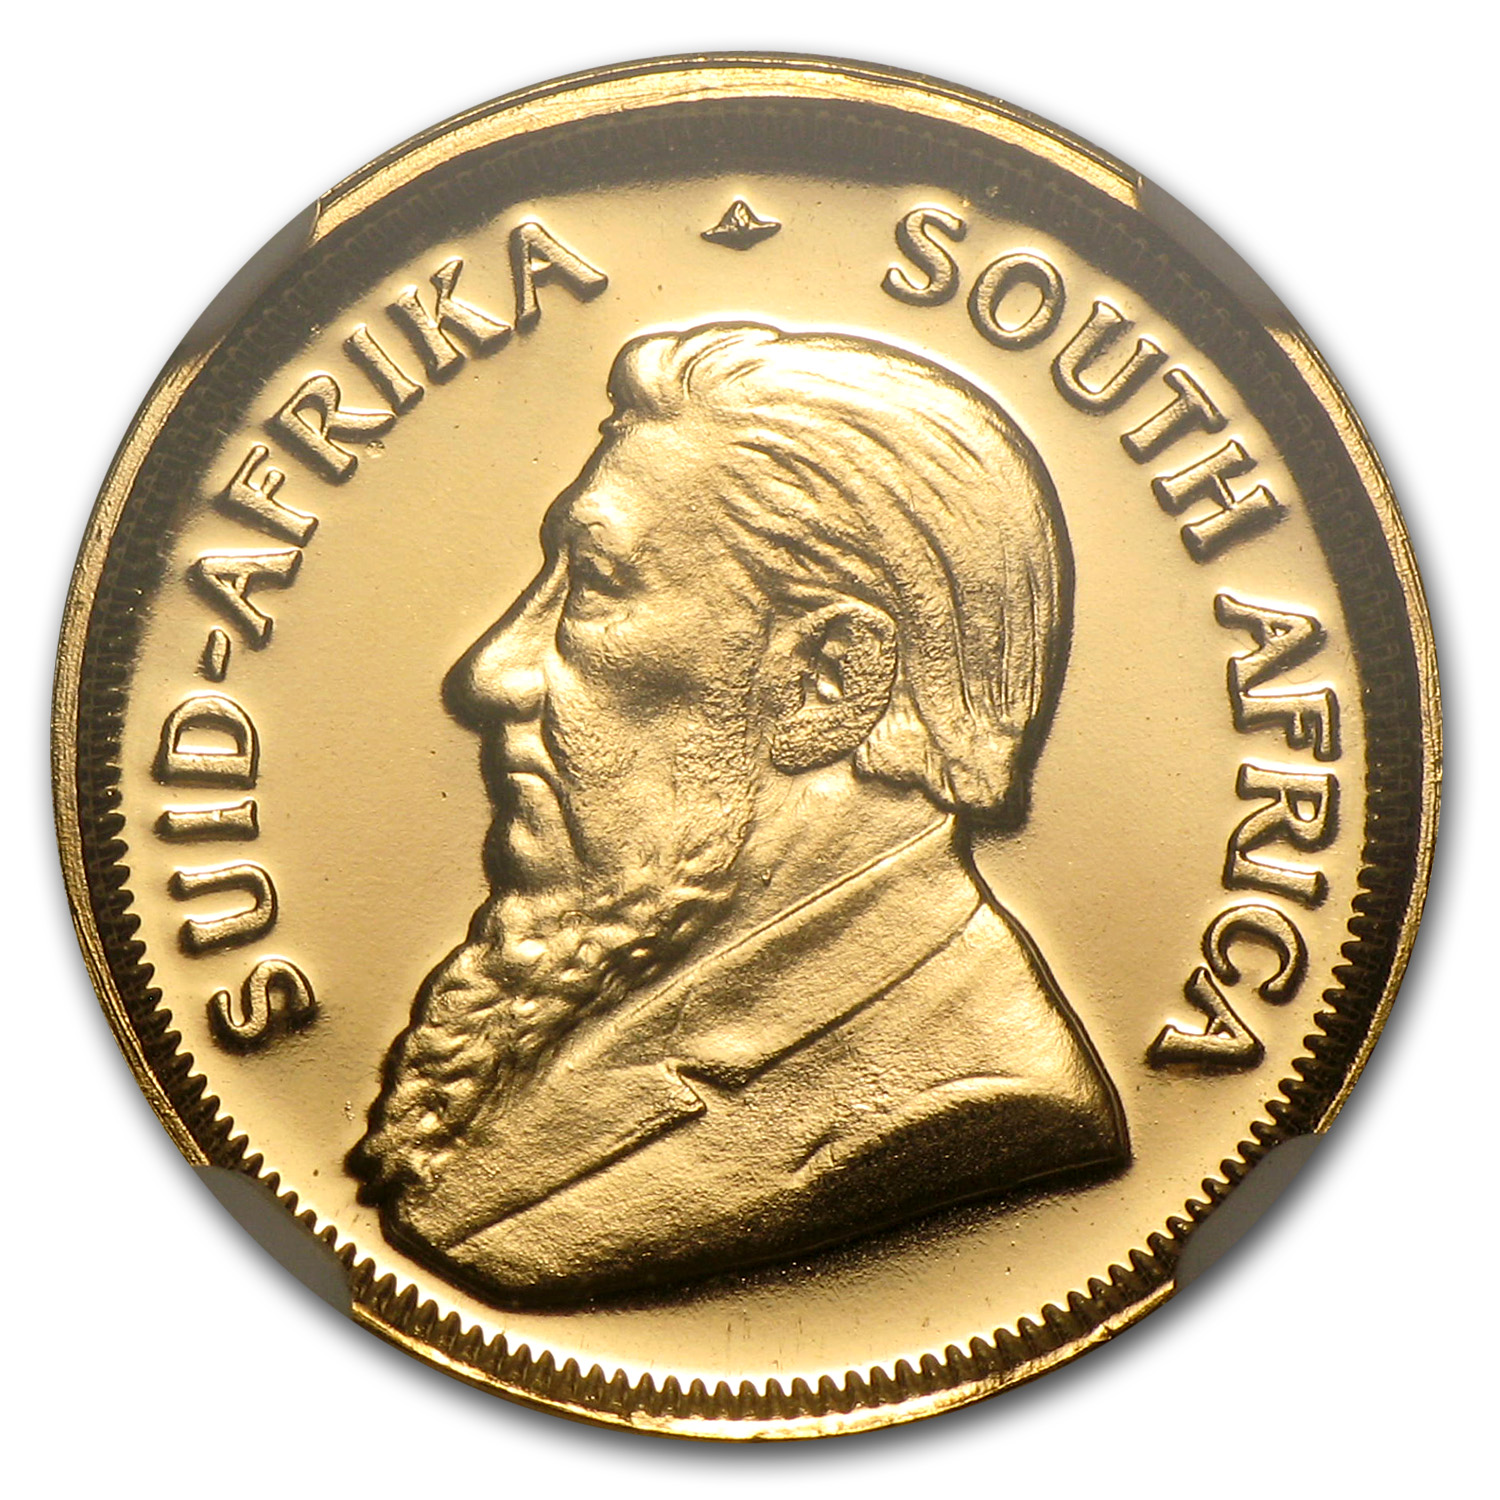 1990 South Africa 1/10 oz Gold Krugerrand PF-69 NGC (GRC)